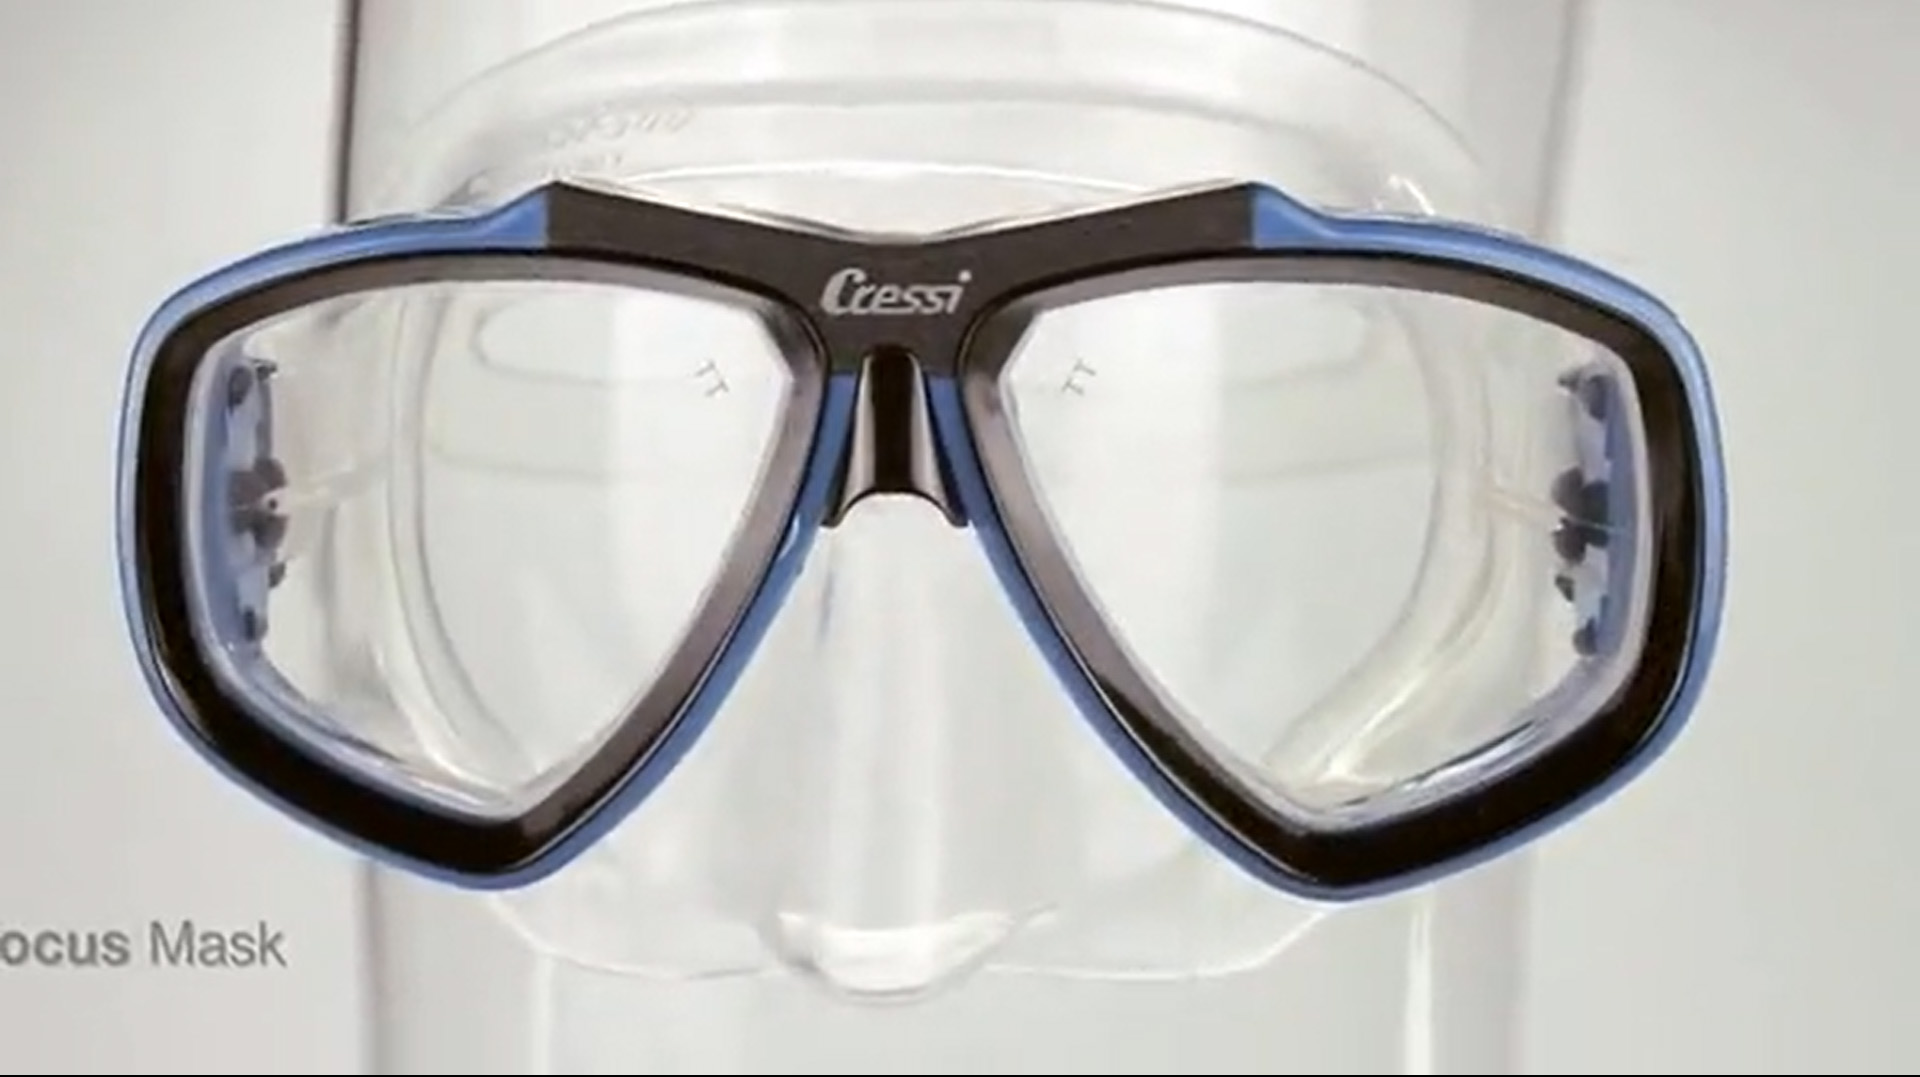 Cressi First Dive Mask with Inclined Lenses for Scuba Diving - Optical Lenses Available - Focus: made in Italy